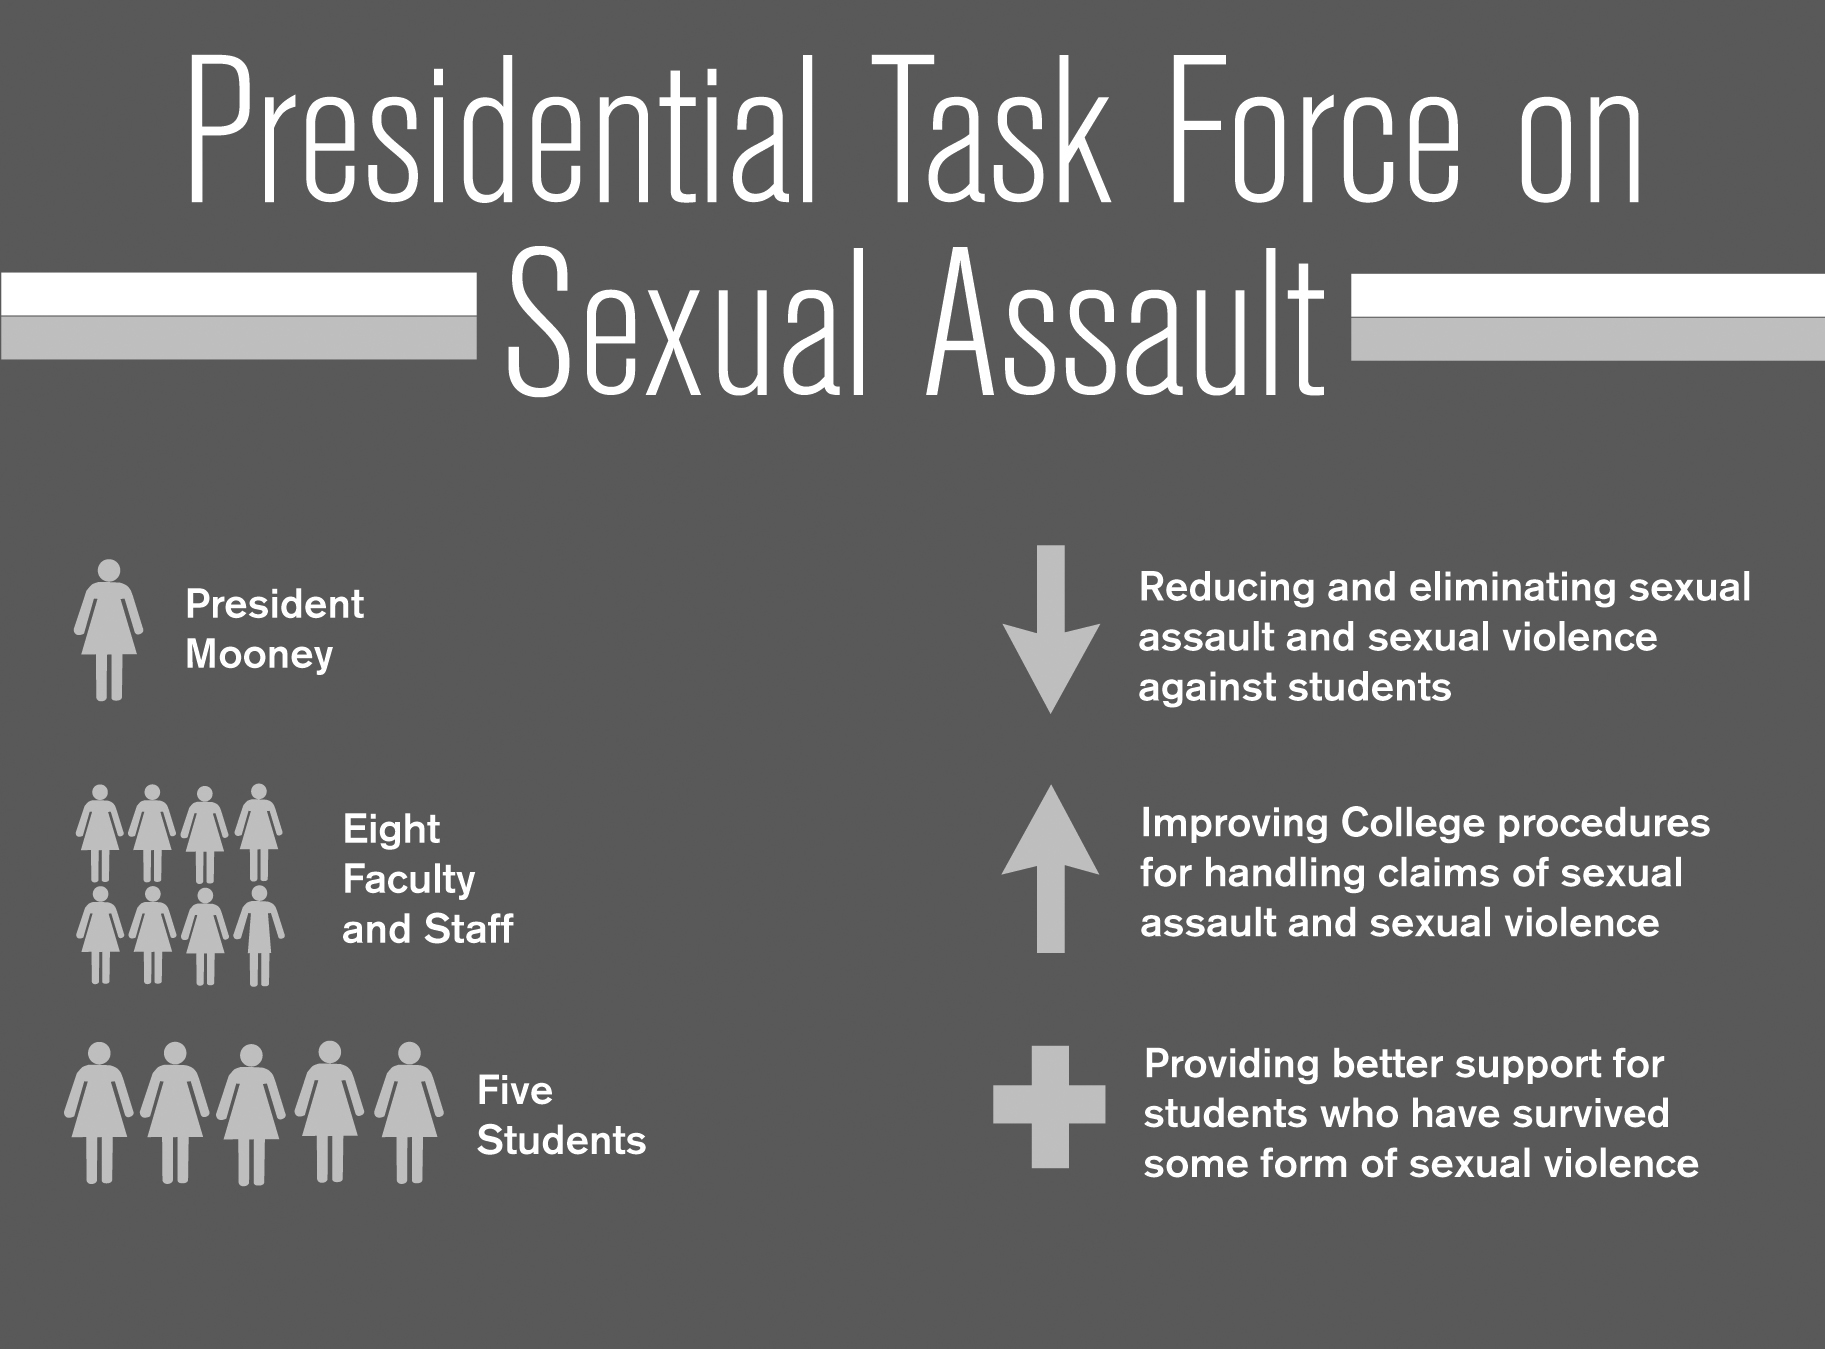 SMC appoints sexual assault task force members // The Observer